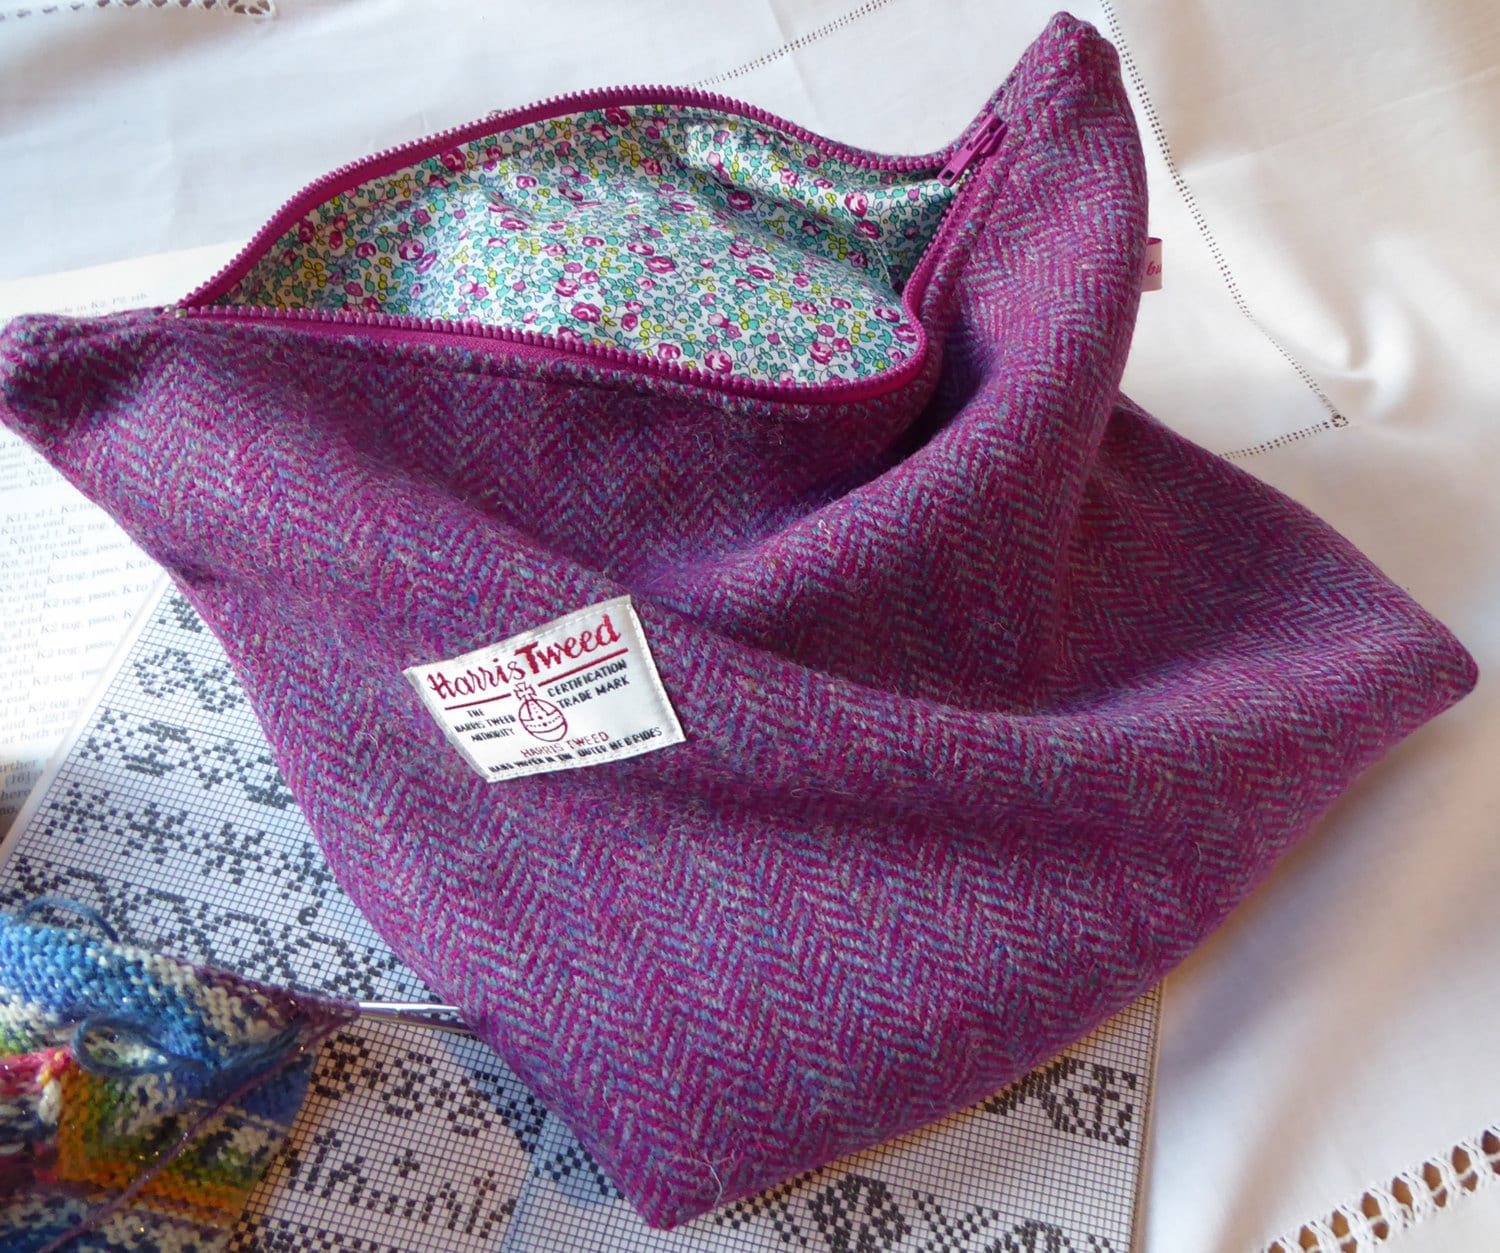 Knitting Project Bags Uk : Knitting bag project in harris tweed